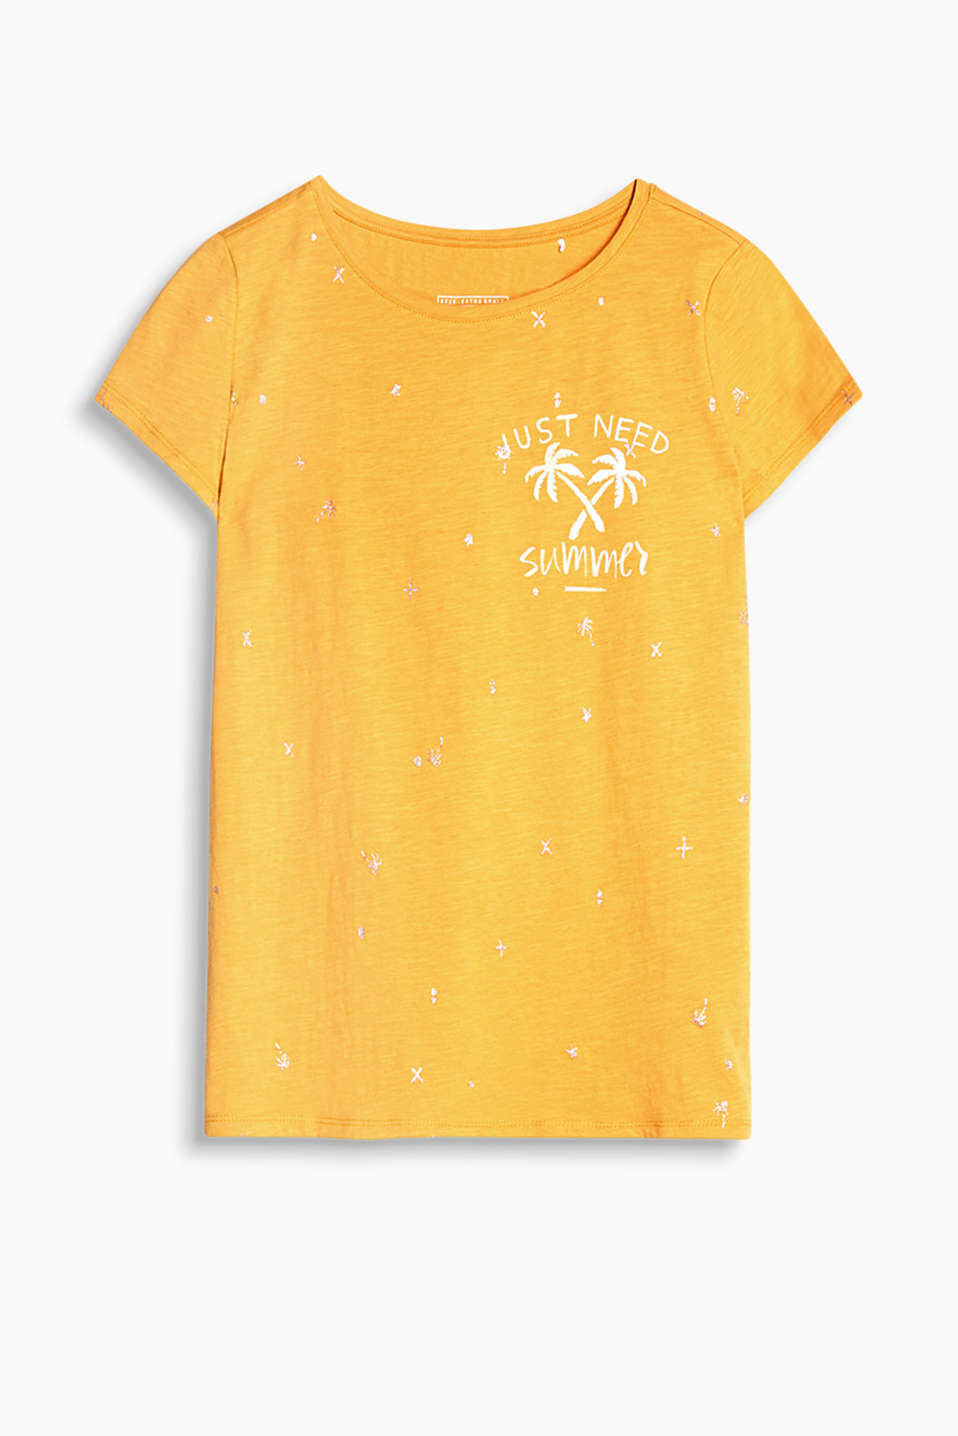 T-shirt with glittery printed motifs, made of textured cotton jersey